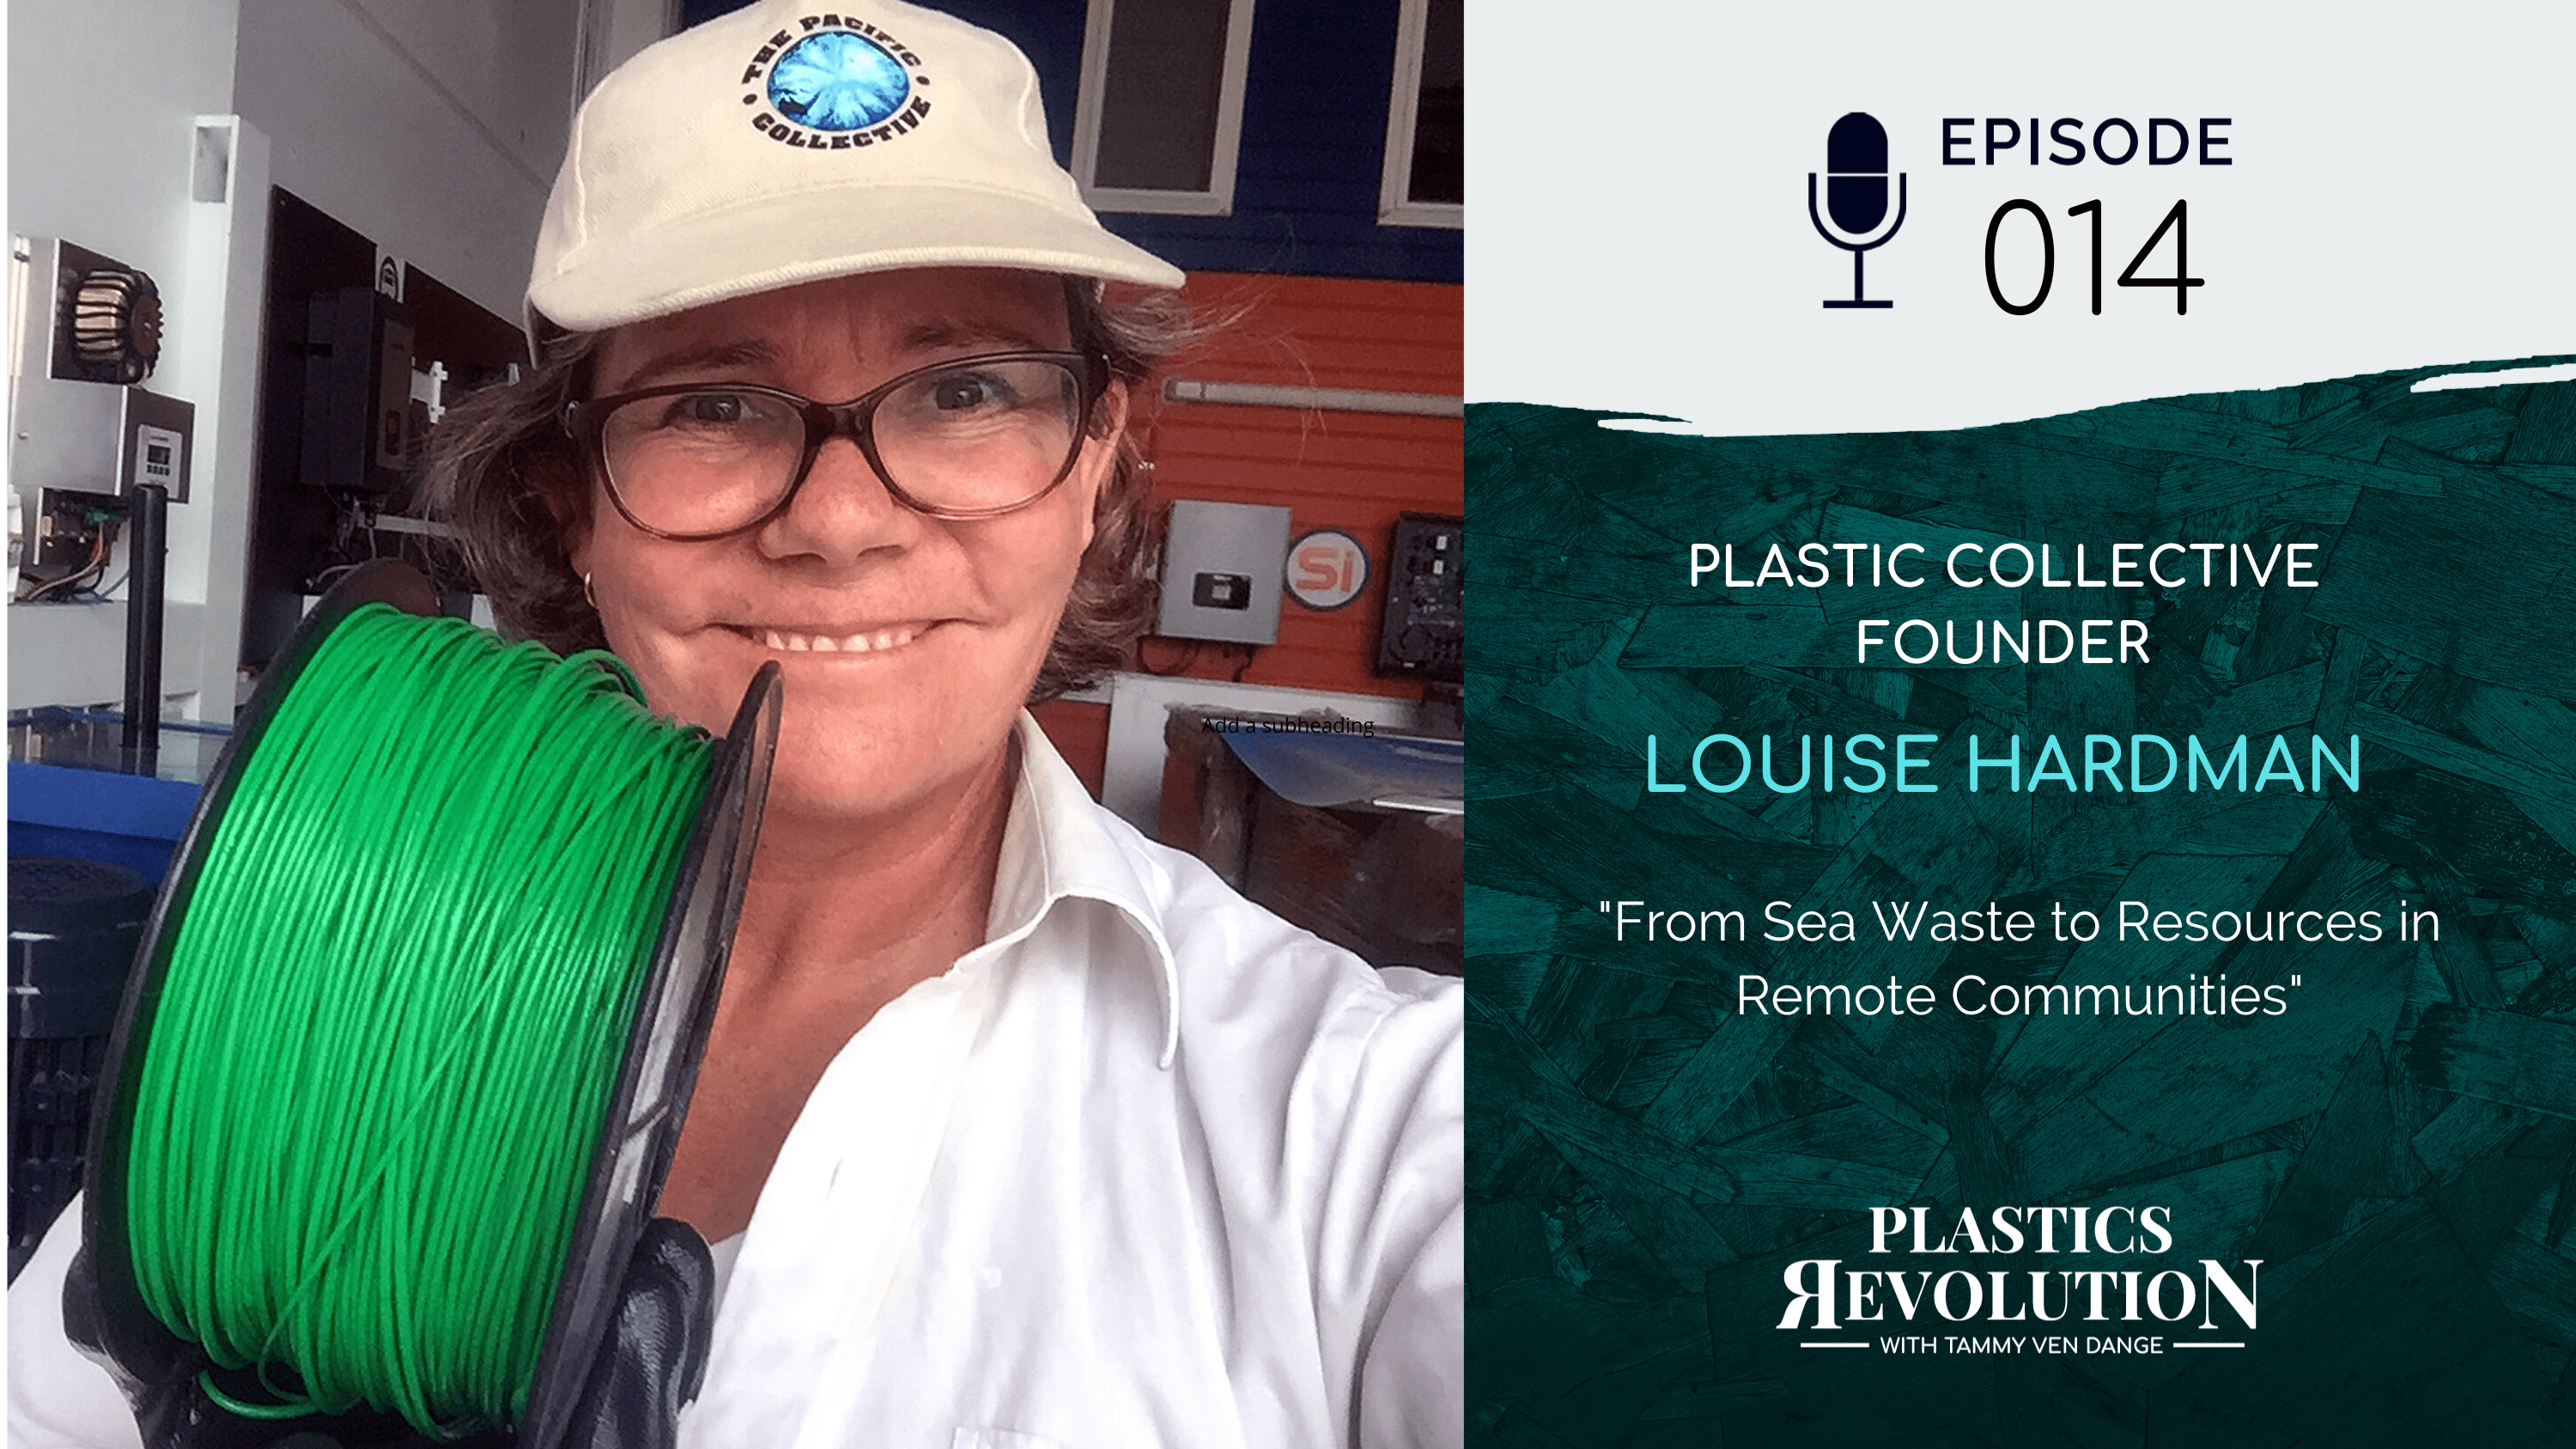 Louise Hardman of Plastic Collective: